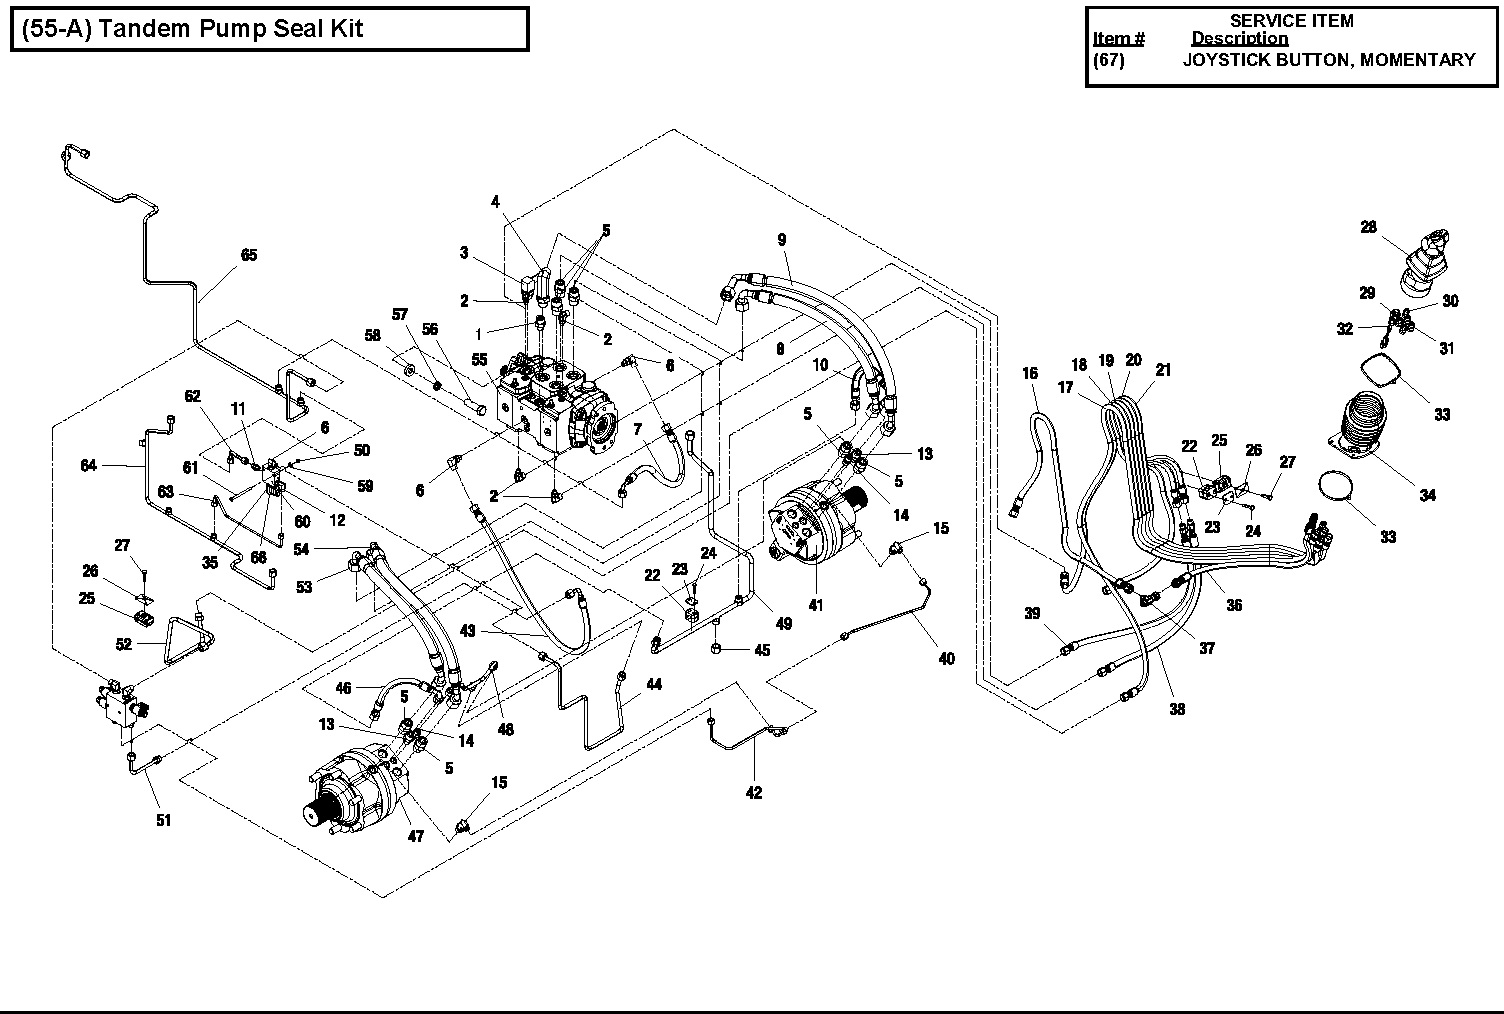 Diagram 3-8B Hydraulic Drive Assembly - 2 Speed